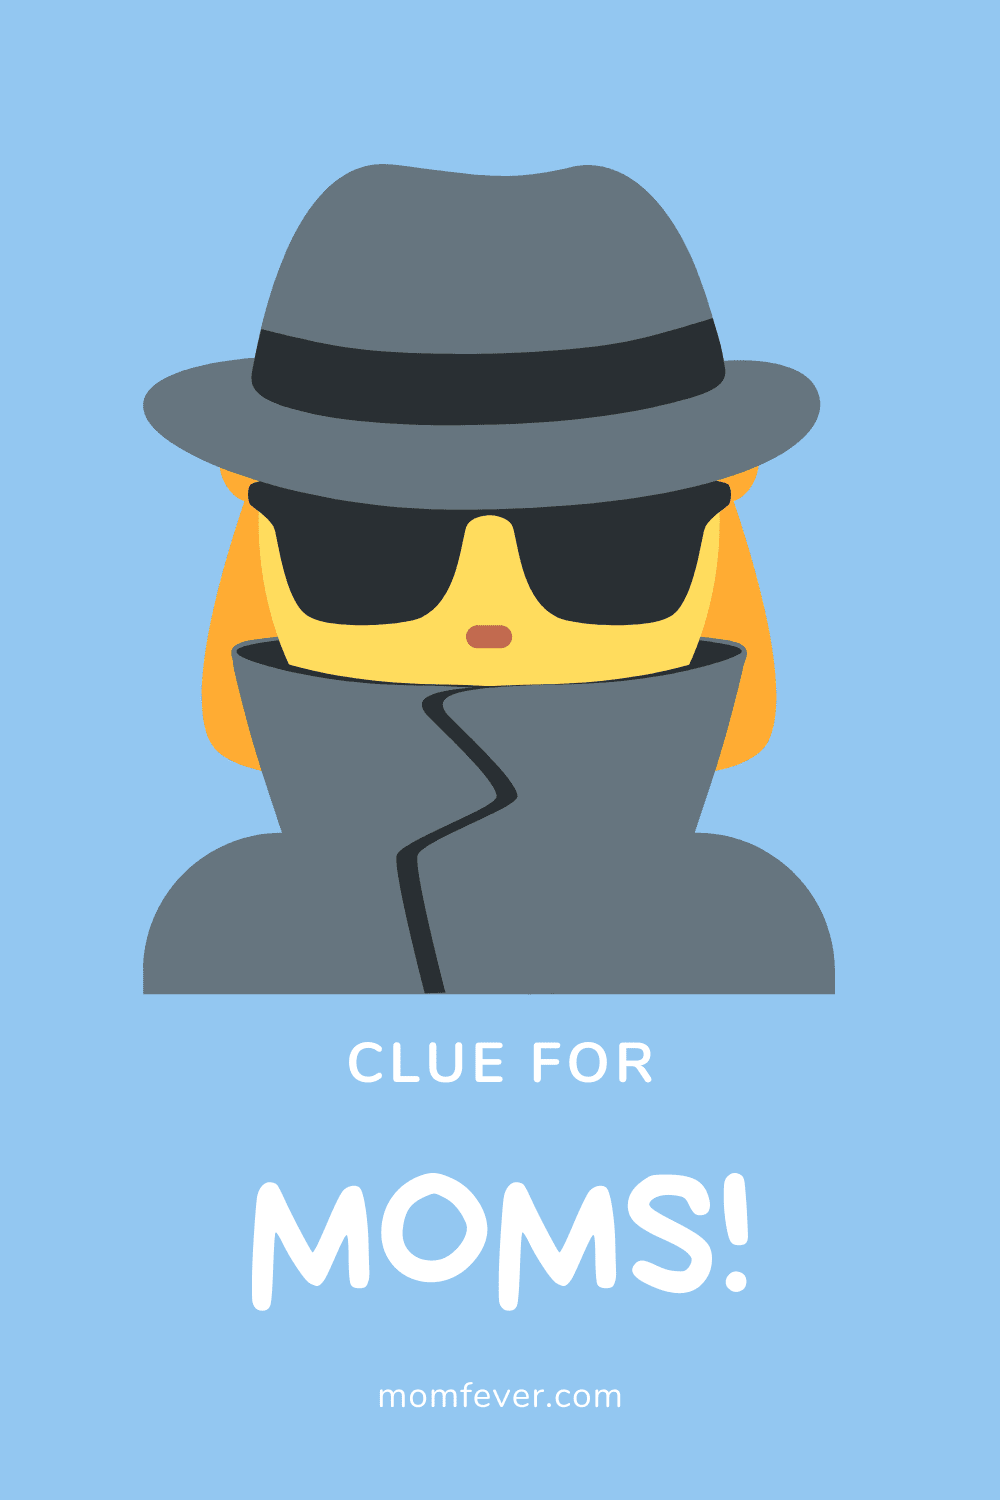 Clue for moms